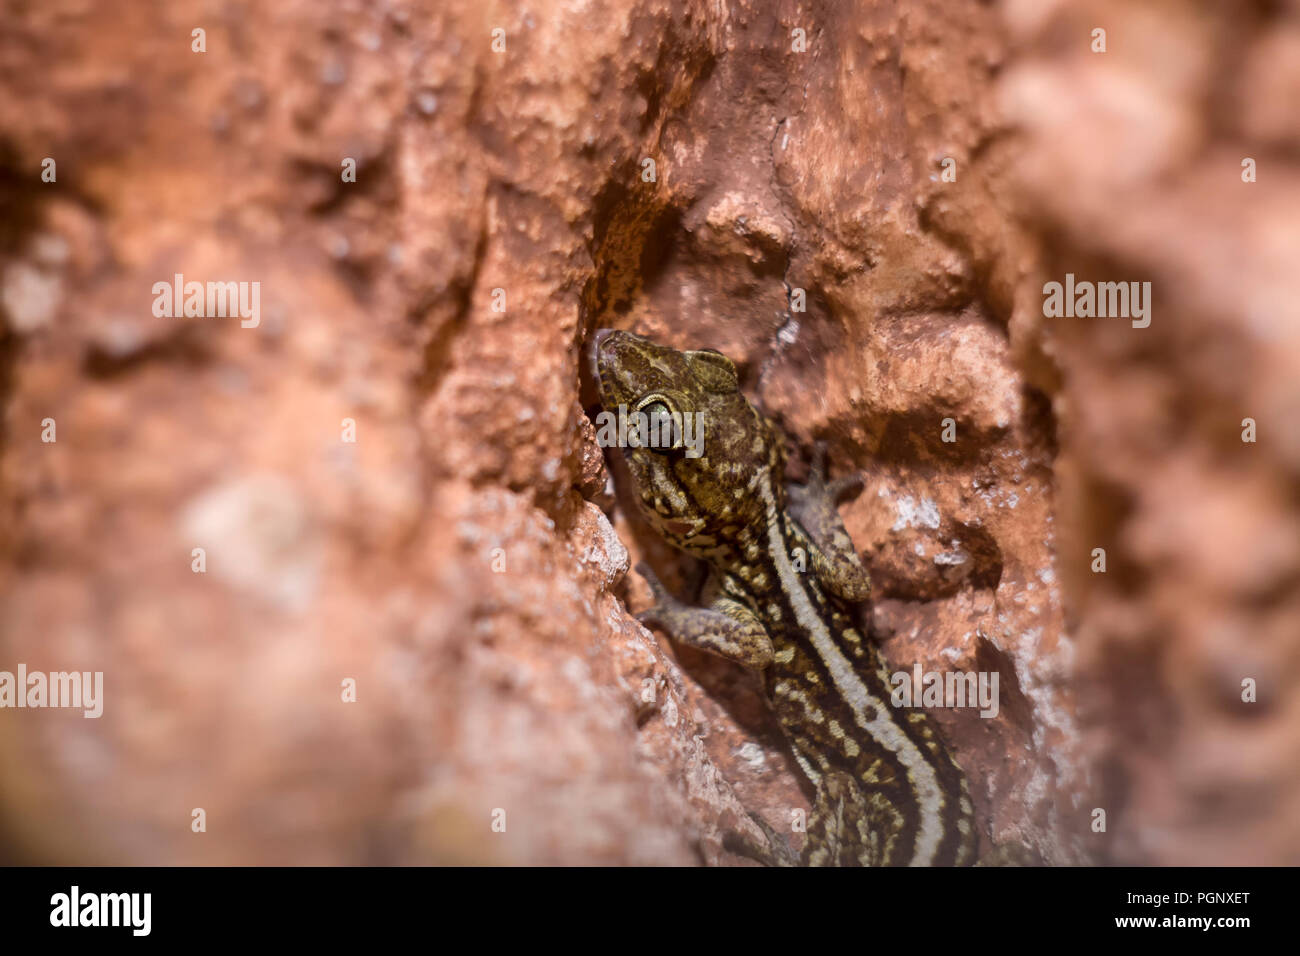 Ocelot gecko close-up, shallow dof.It is sometimes known as the Madagascar ground, pictus, Malagasy fat-tailed gecko, or panther gecko. Stock Photo